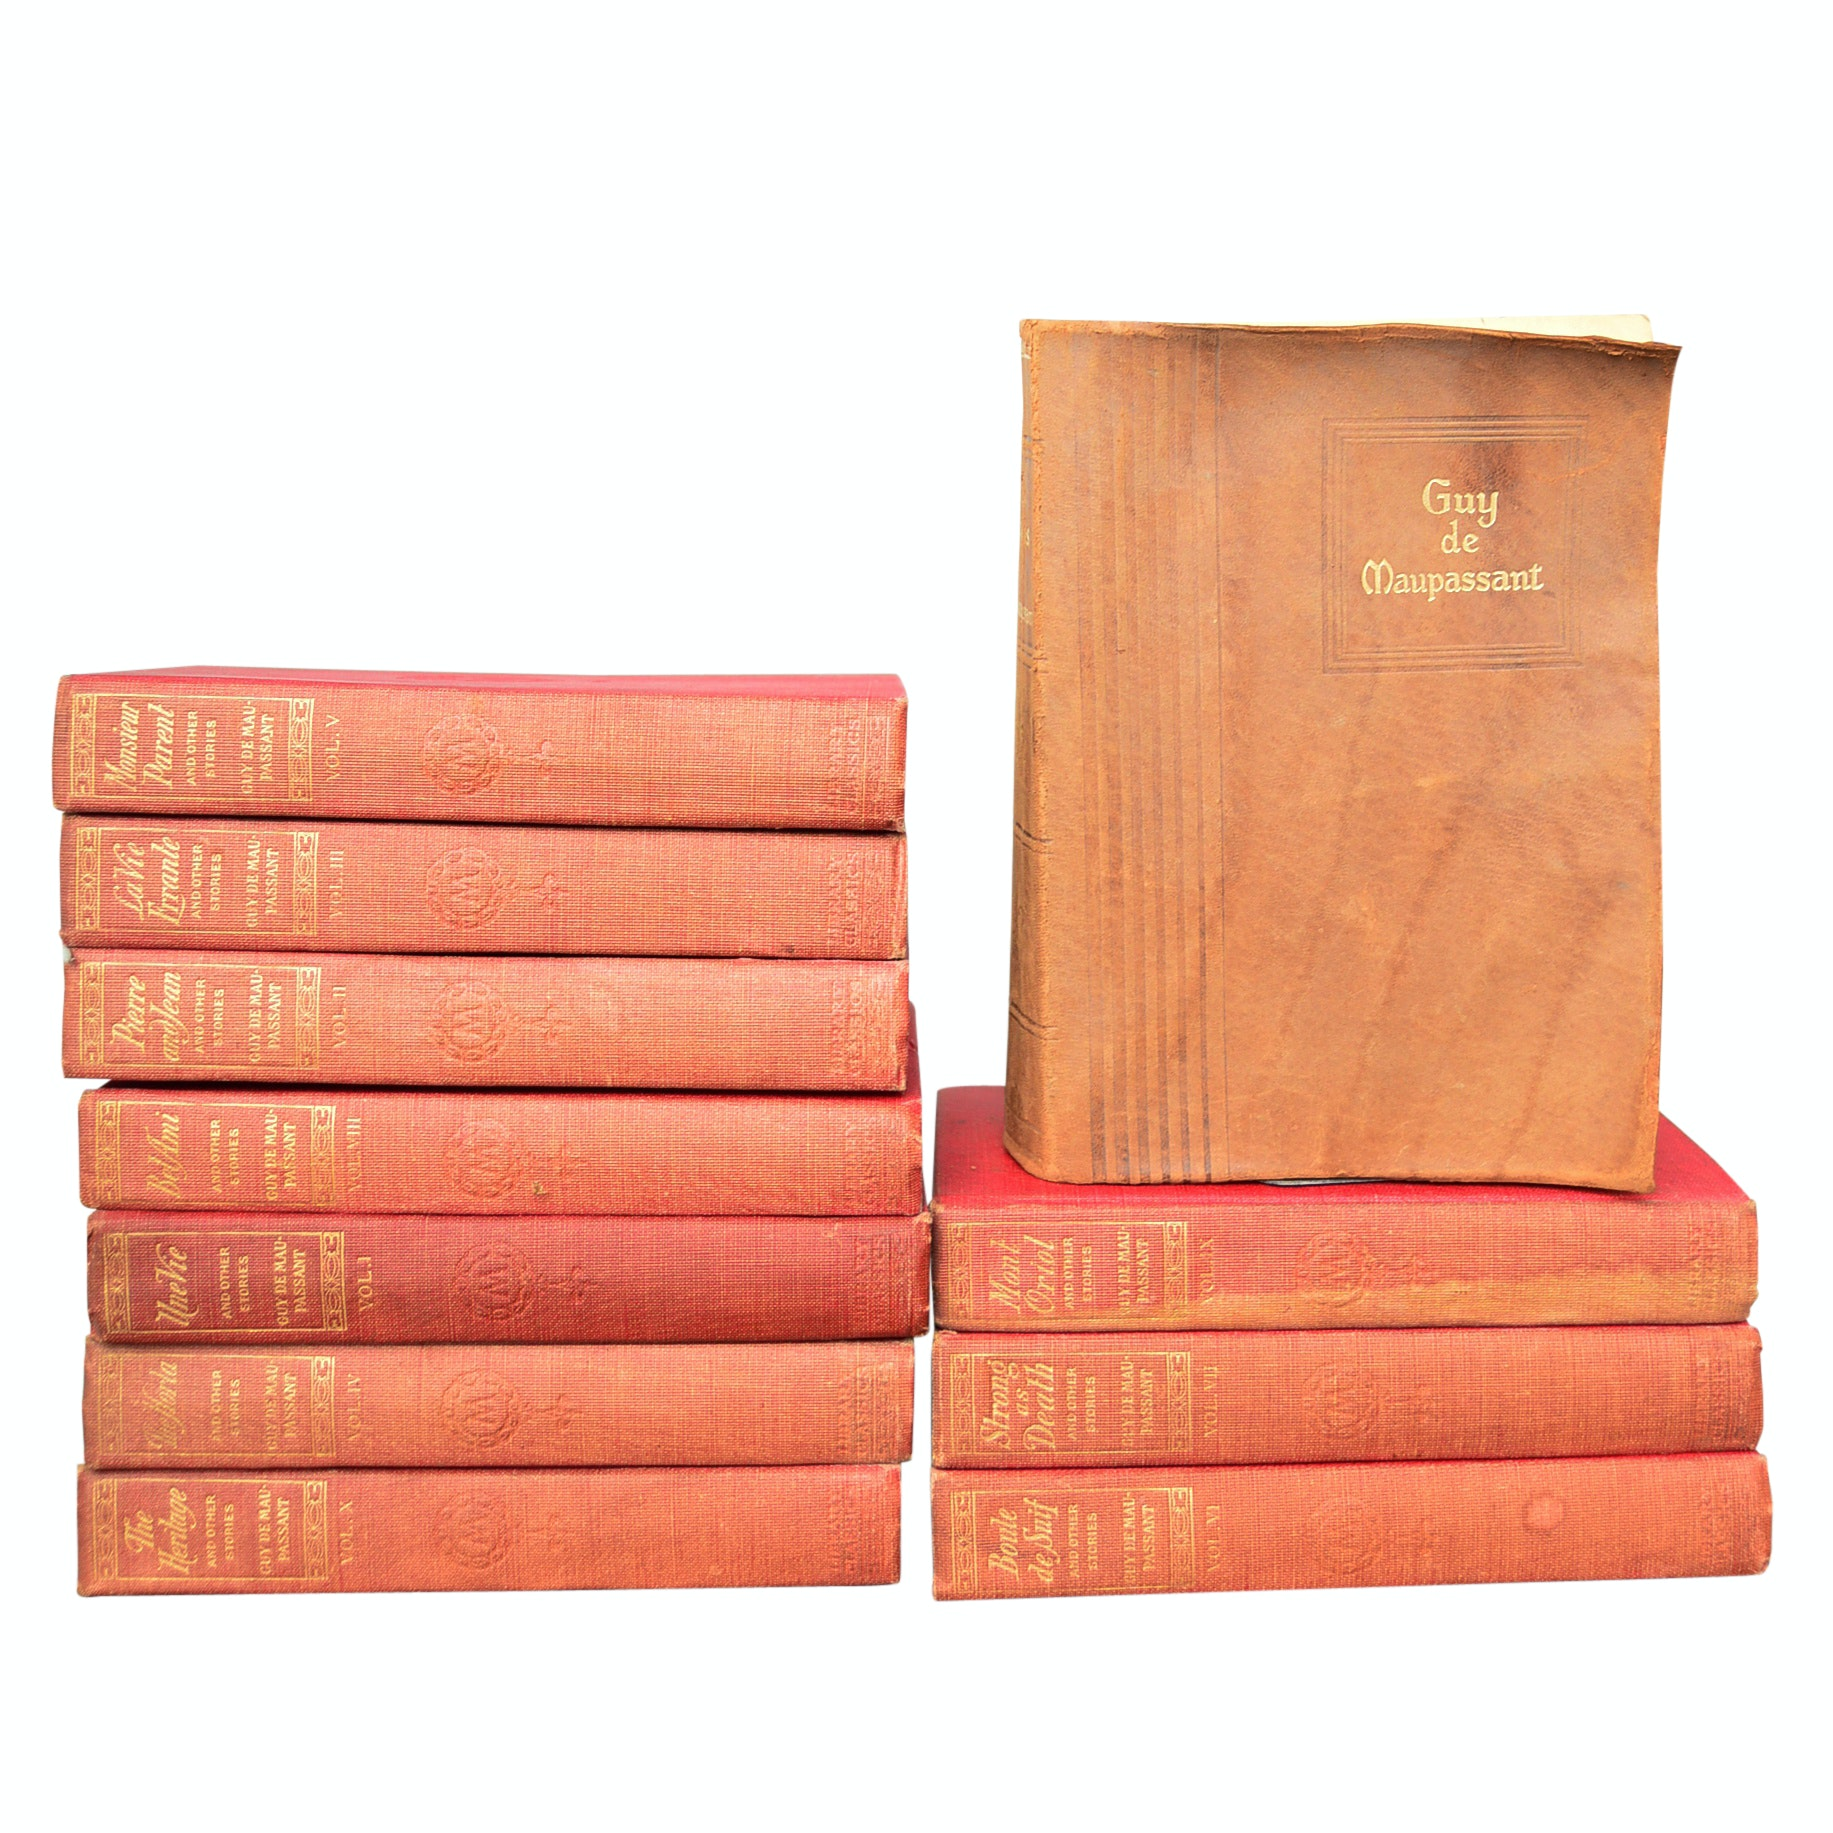 Guy de Maupassant 10 Volume Set, circa 1903 with Suede-Bound Short Story Volume